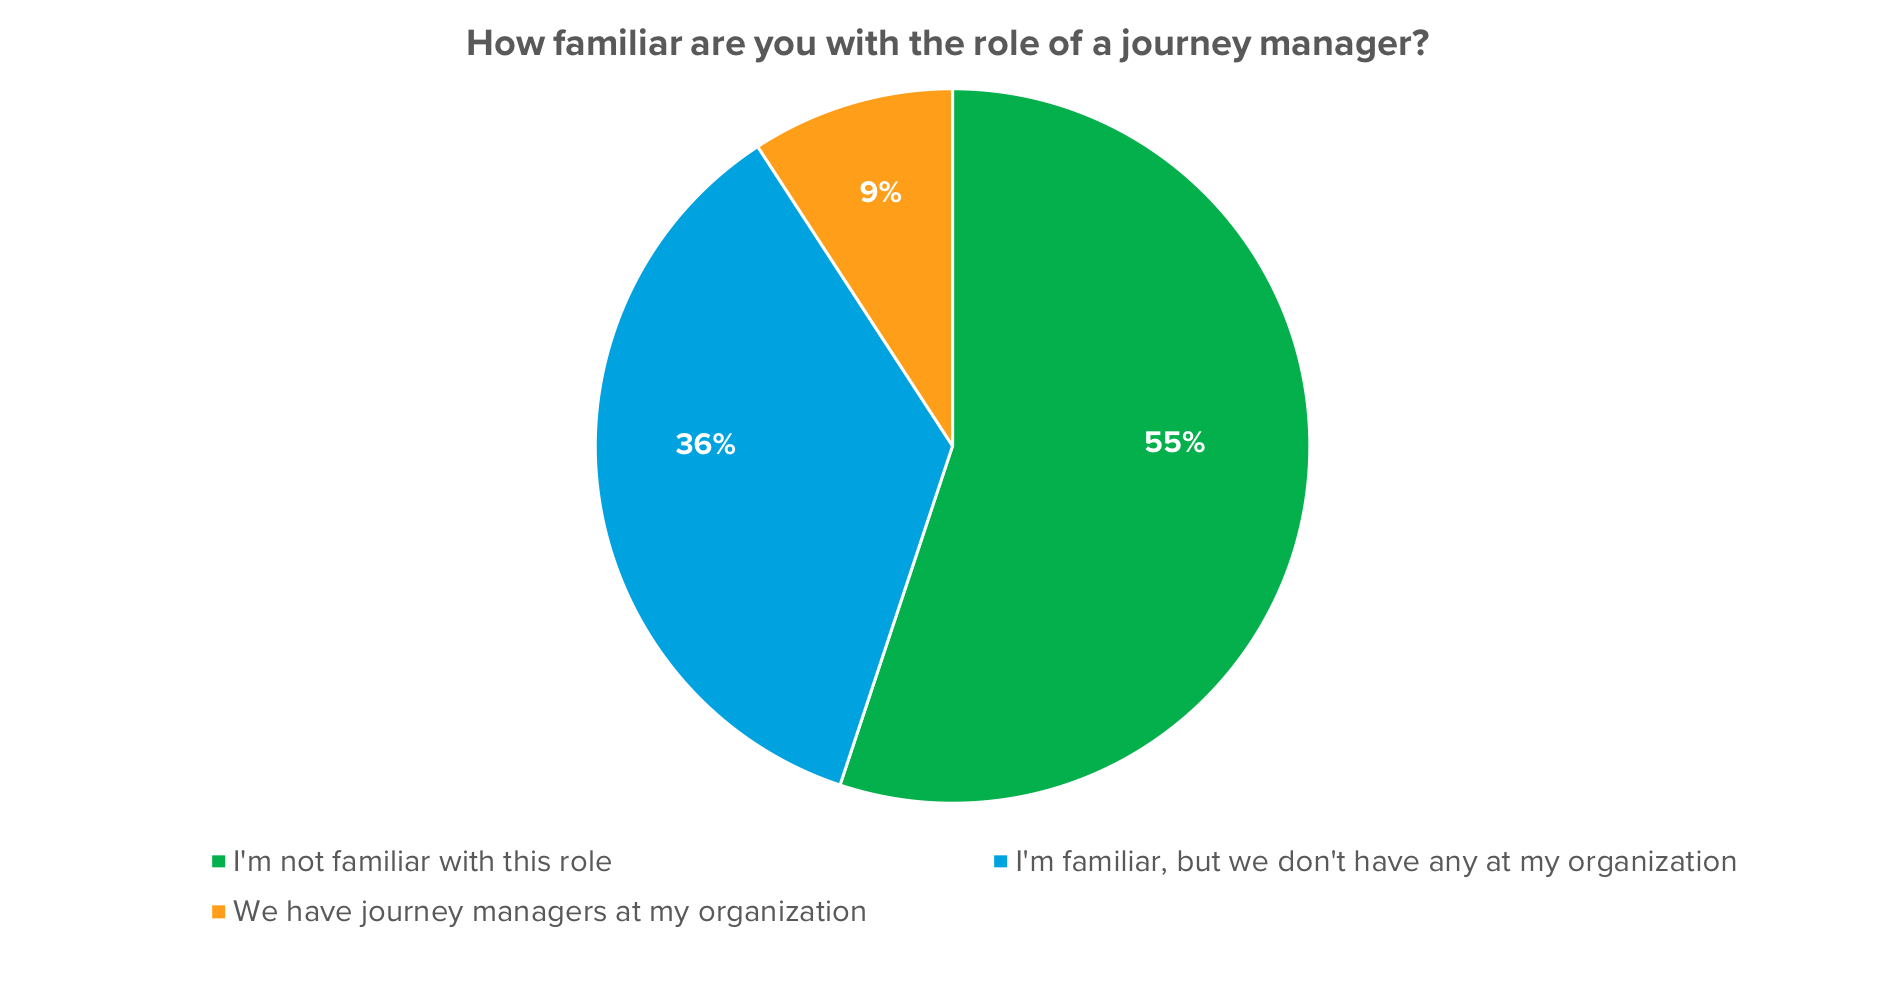 How-familiar-are-you-with-the-role-of-journey-manager